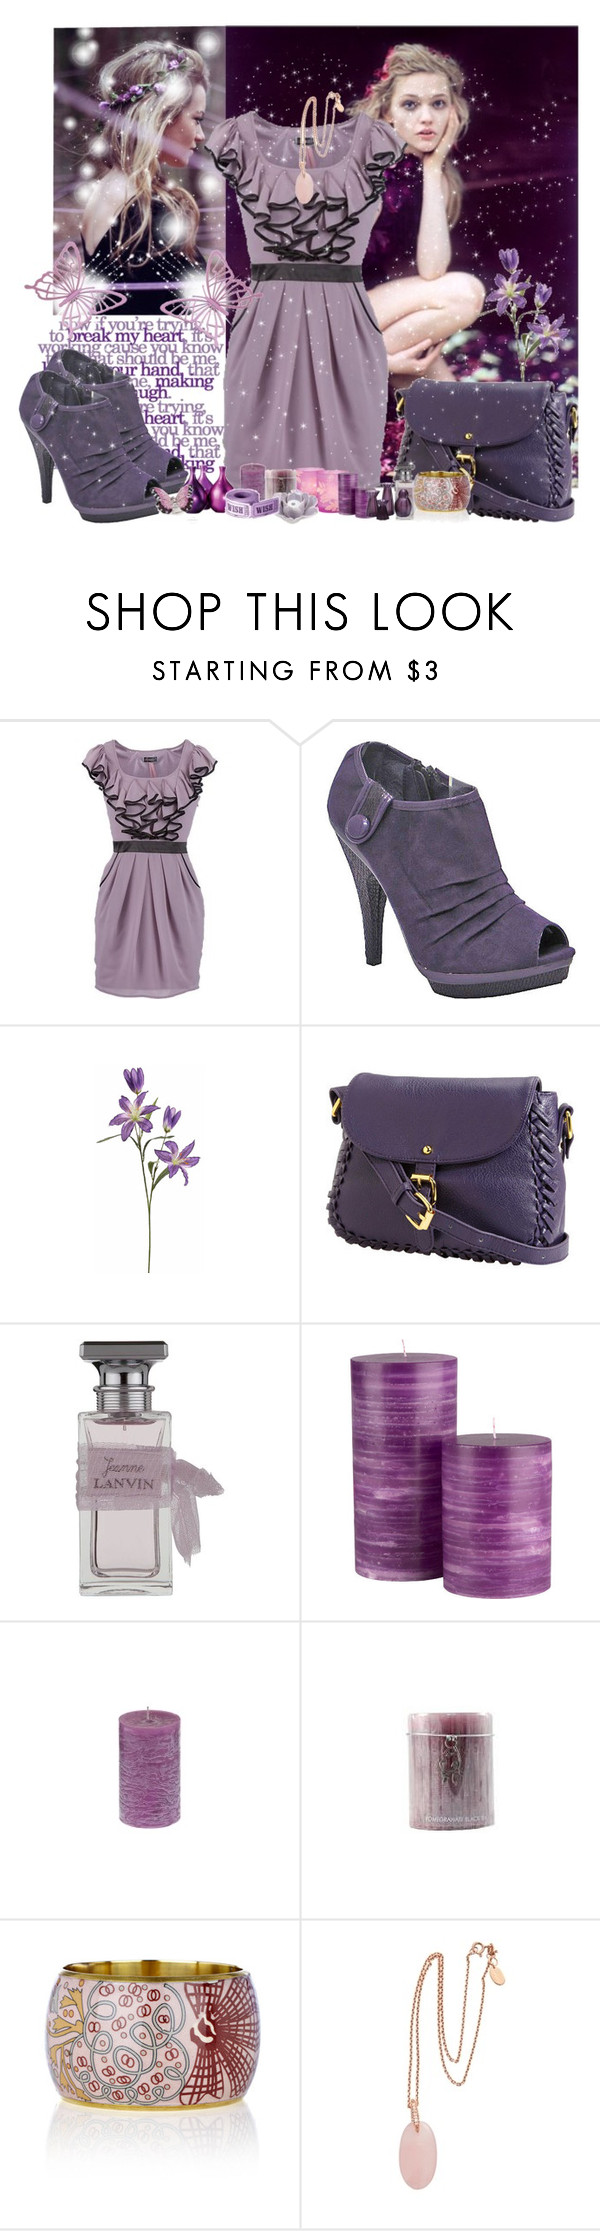 """untitled"" by yo13898 ❤ liked on Polyvore featuring Nude, Justin Bieber, Lipsy, Liliana, Market, Lanvin, Babette Wasserman and Cuteberry"